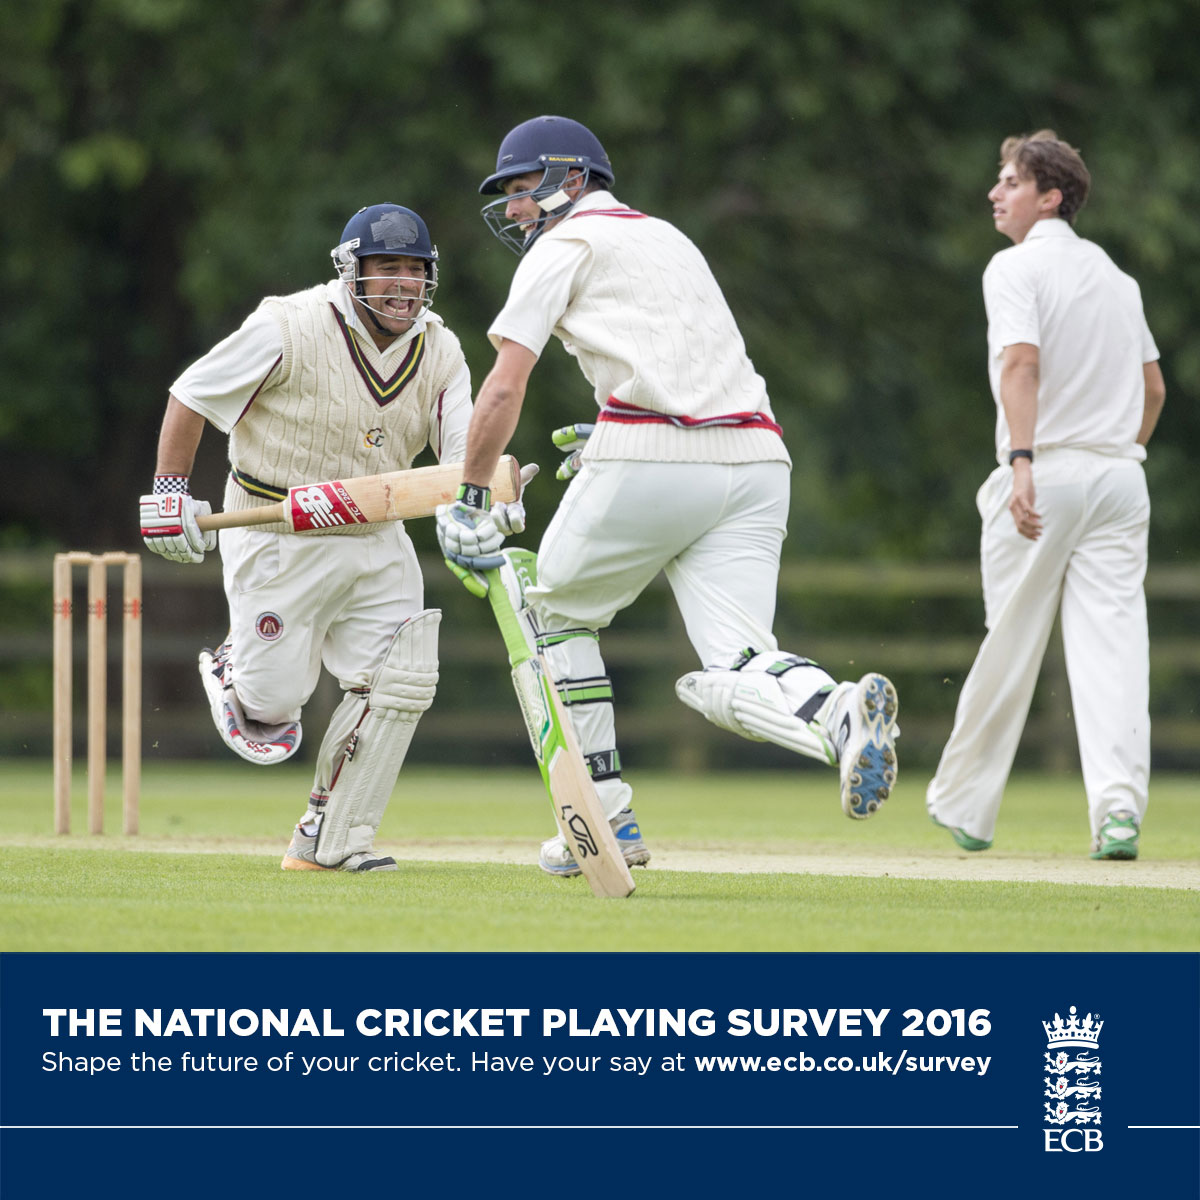 Take the National Cricket Playing Survey and have your say on the future of cricket